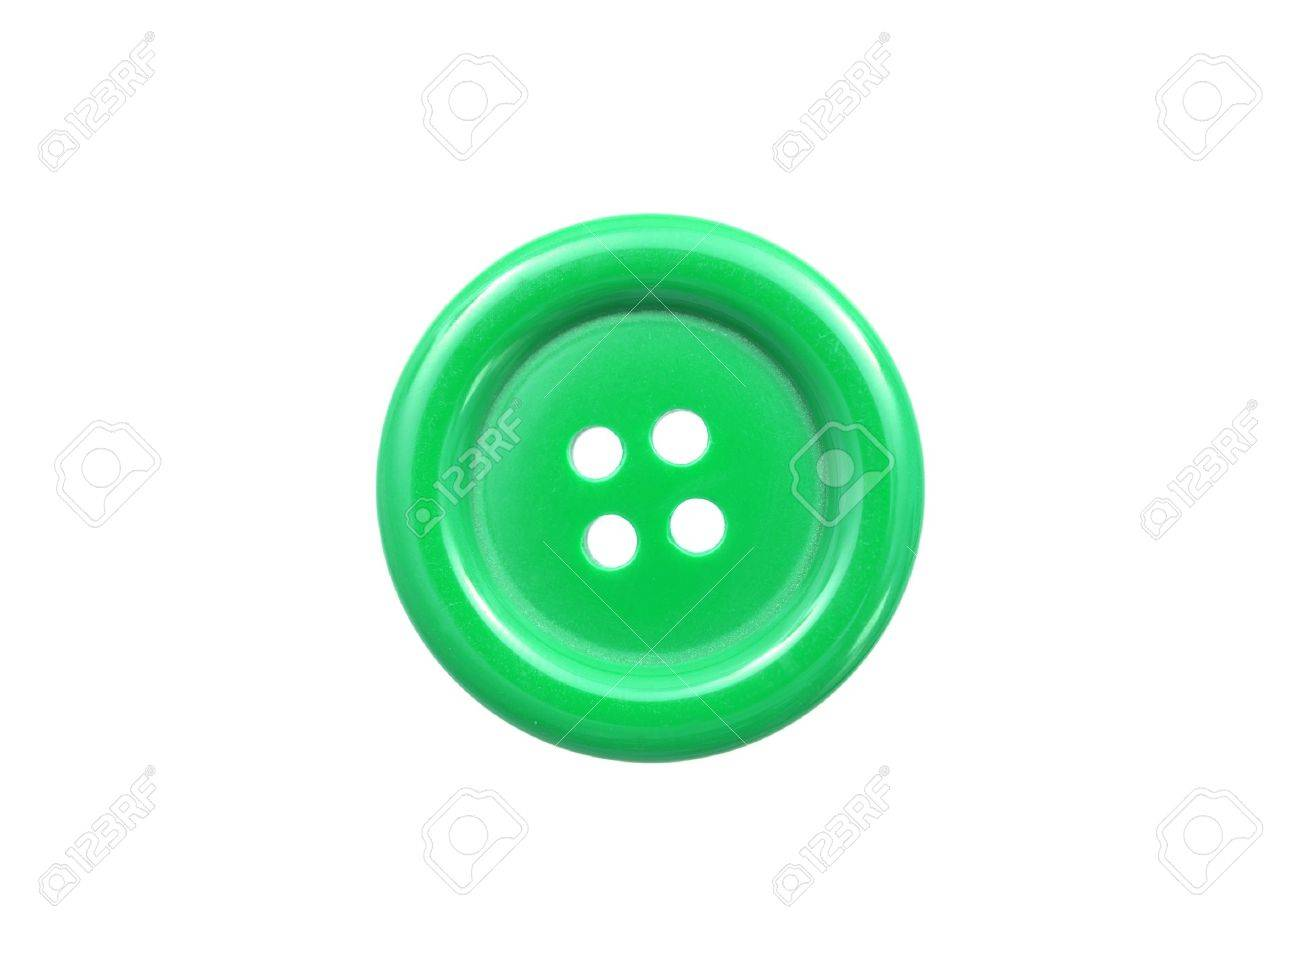 Buttons isolated against a white background Stock Photo - 12388713